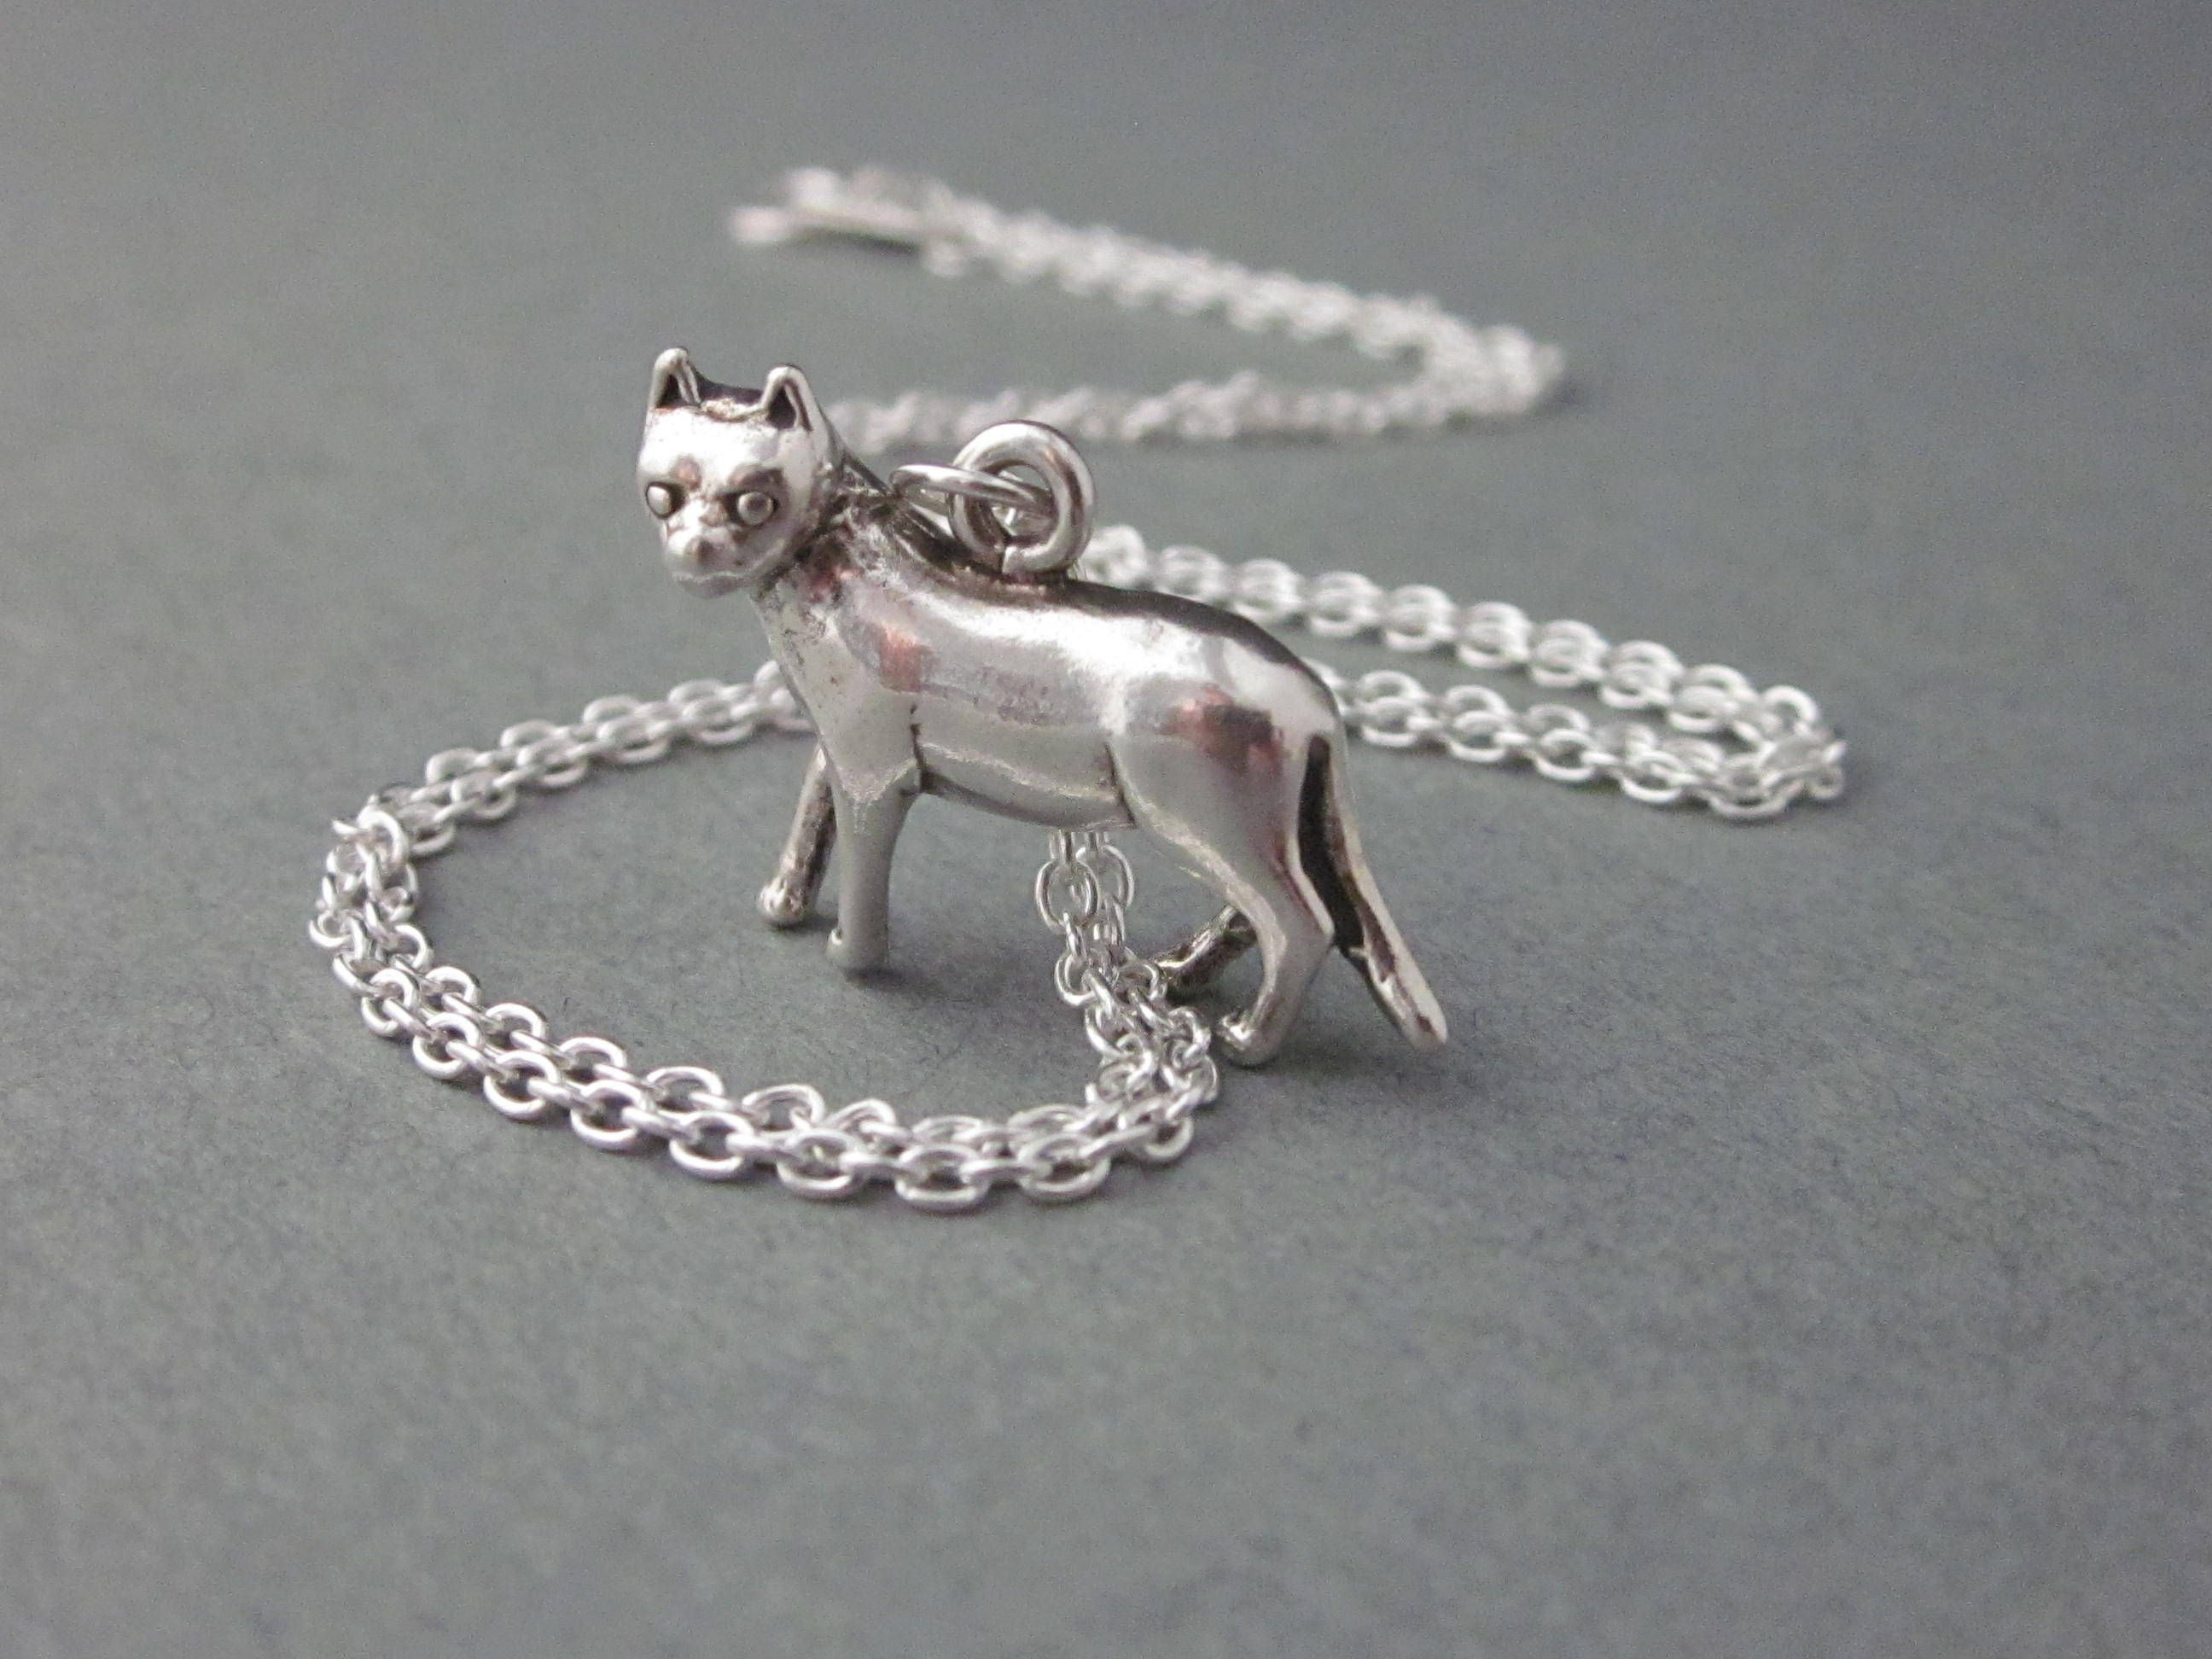 Chinese Crested Dog Set of Earrings and Bracelet Photo Jewelry Handmade